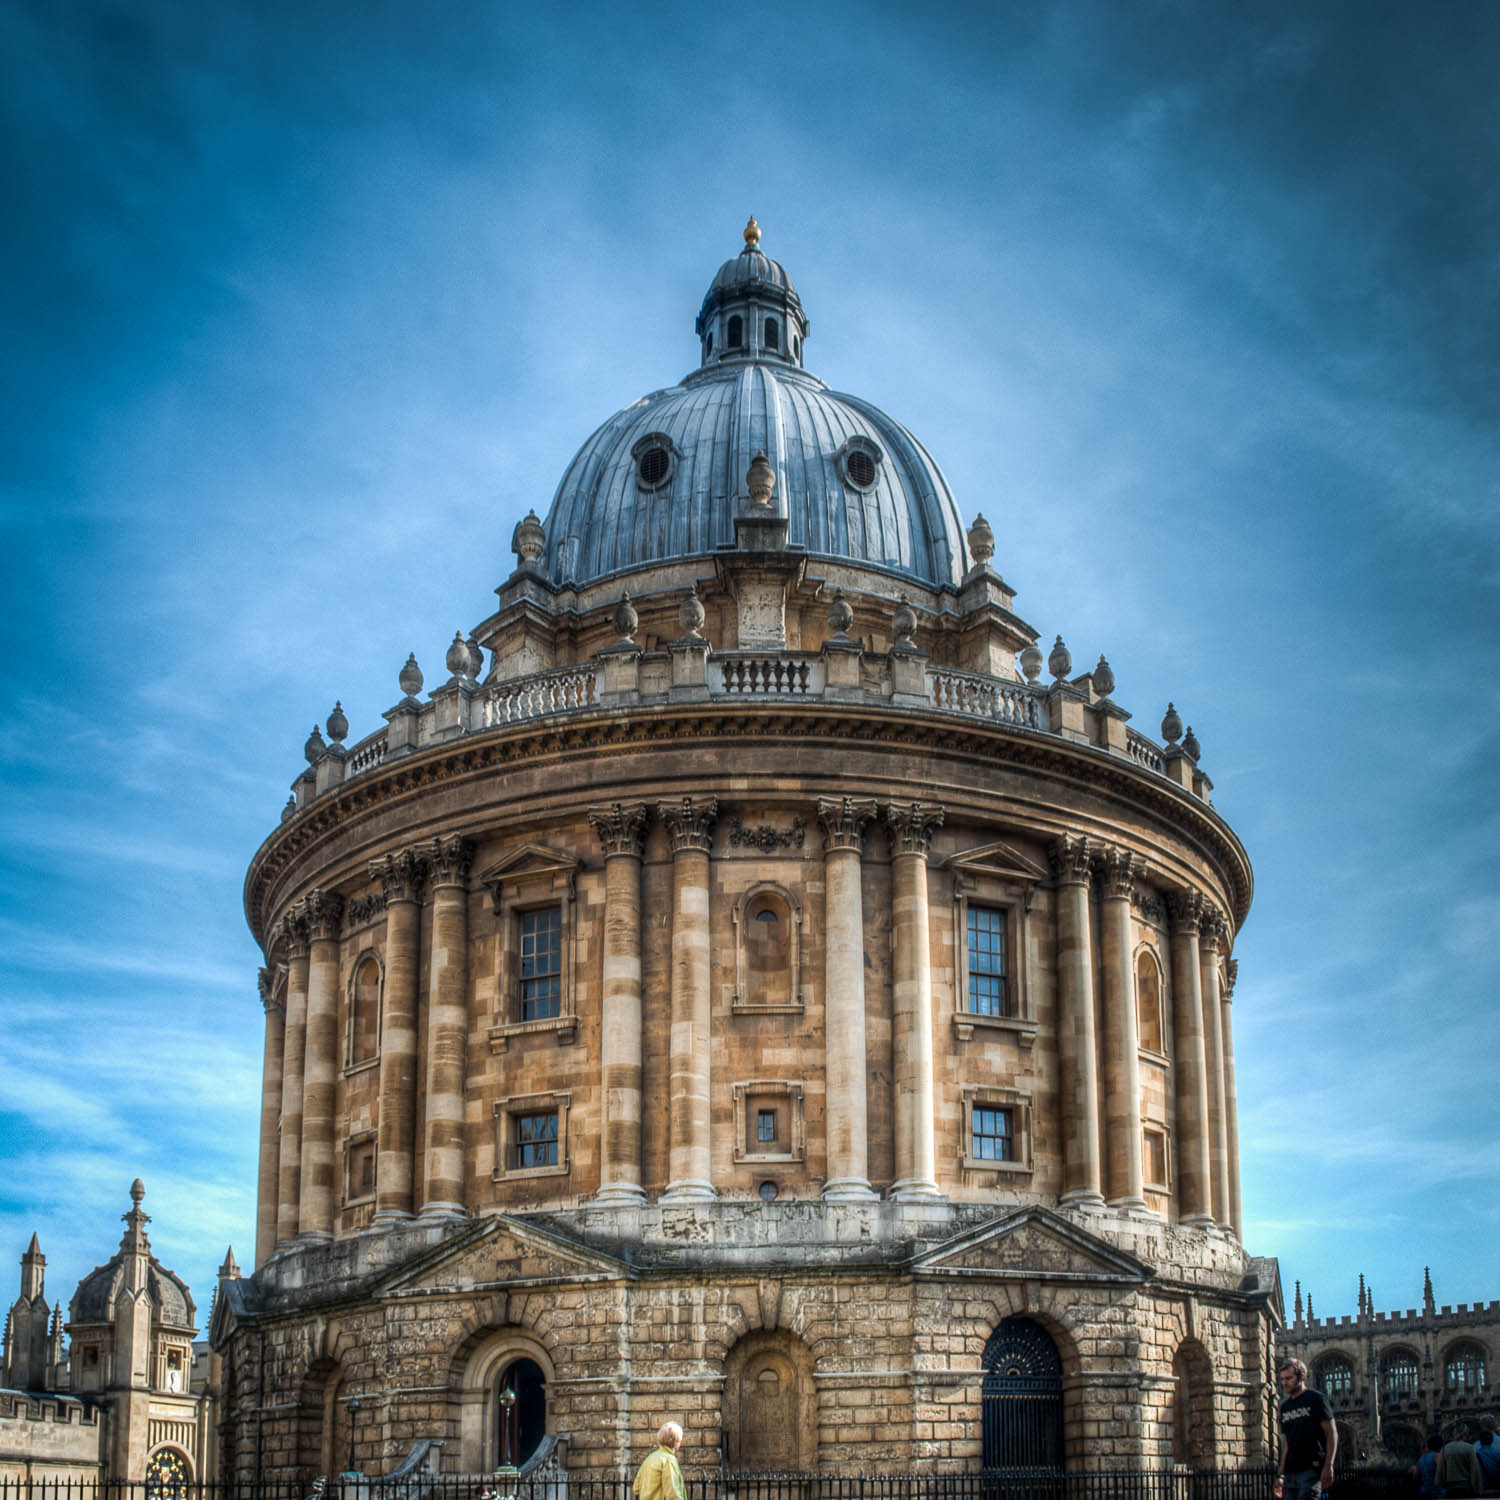 The Radcliffe Camera HDR